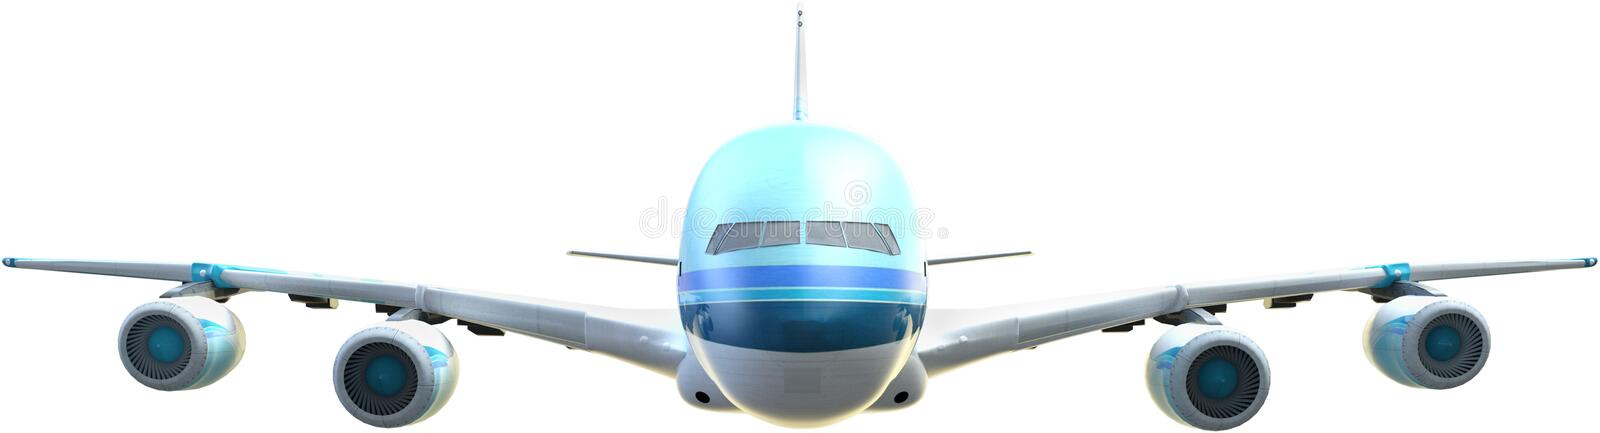 Passenger Airline Jet, Airplane, Isolated. Flying passenger airline jet. The airliner plane is isolated on white, PNG file available royalty free stock photos